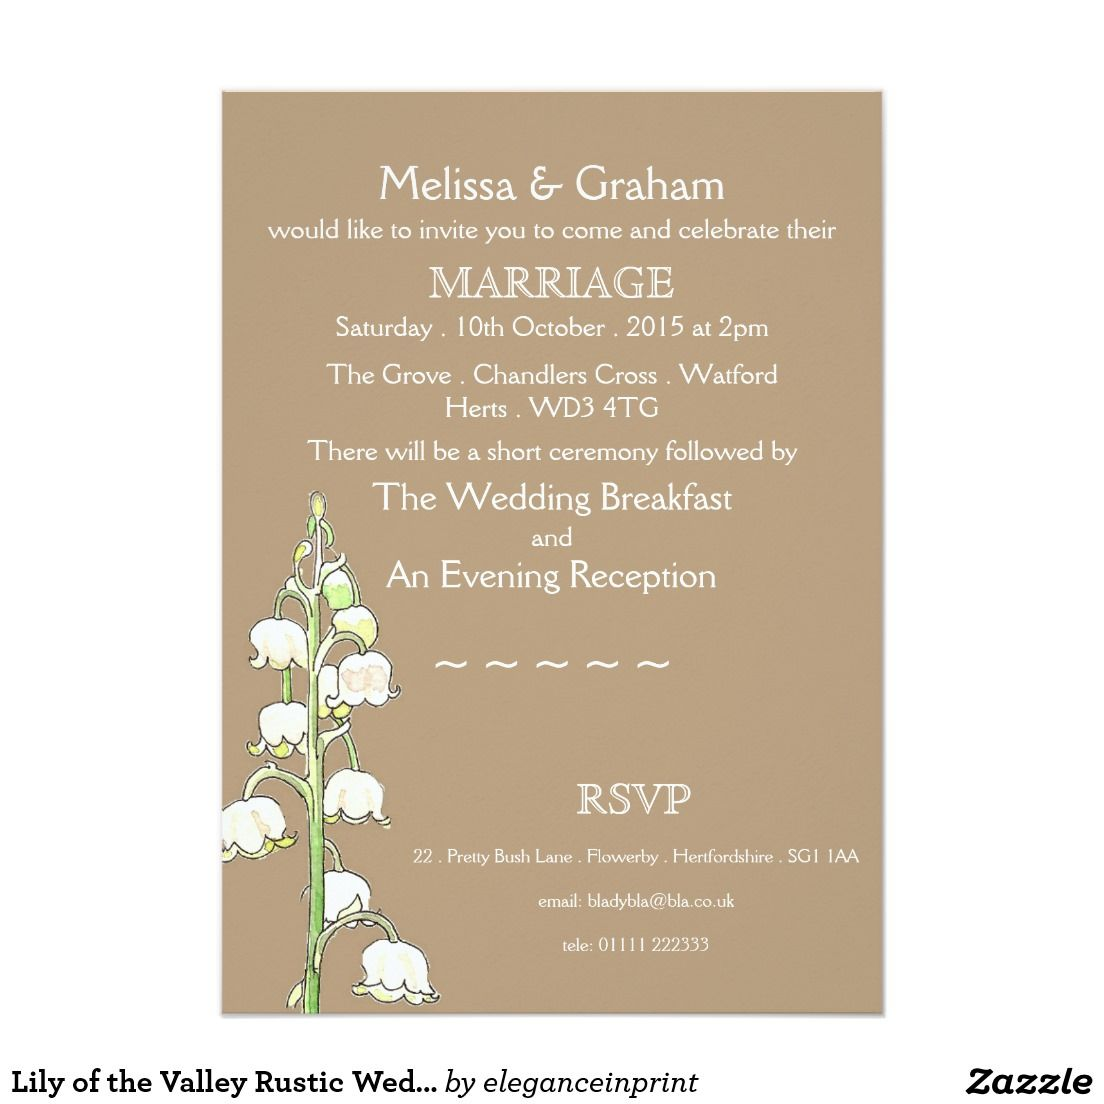 Lily of the Valley Rustic Wedding Invitation | Weddings